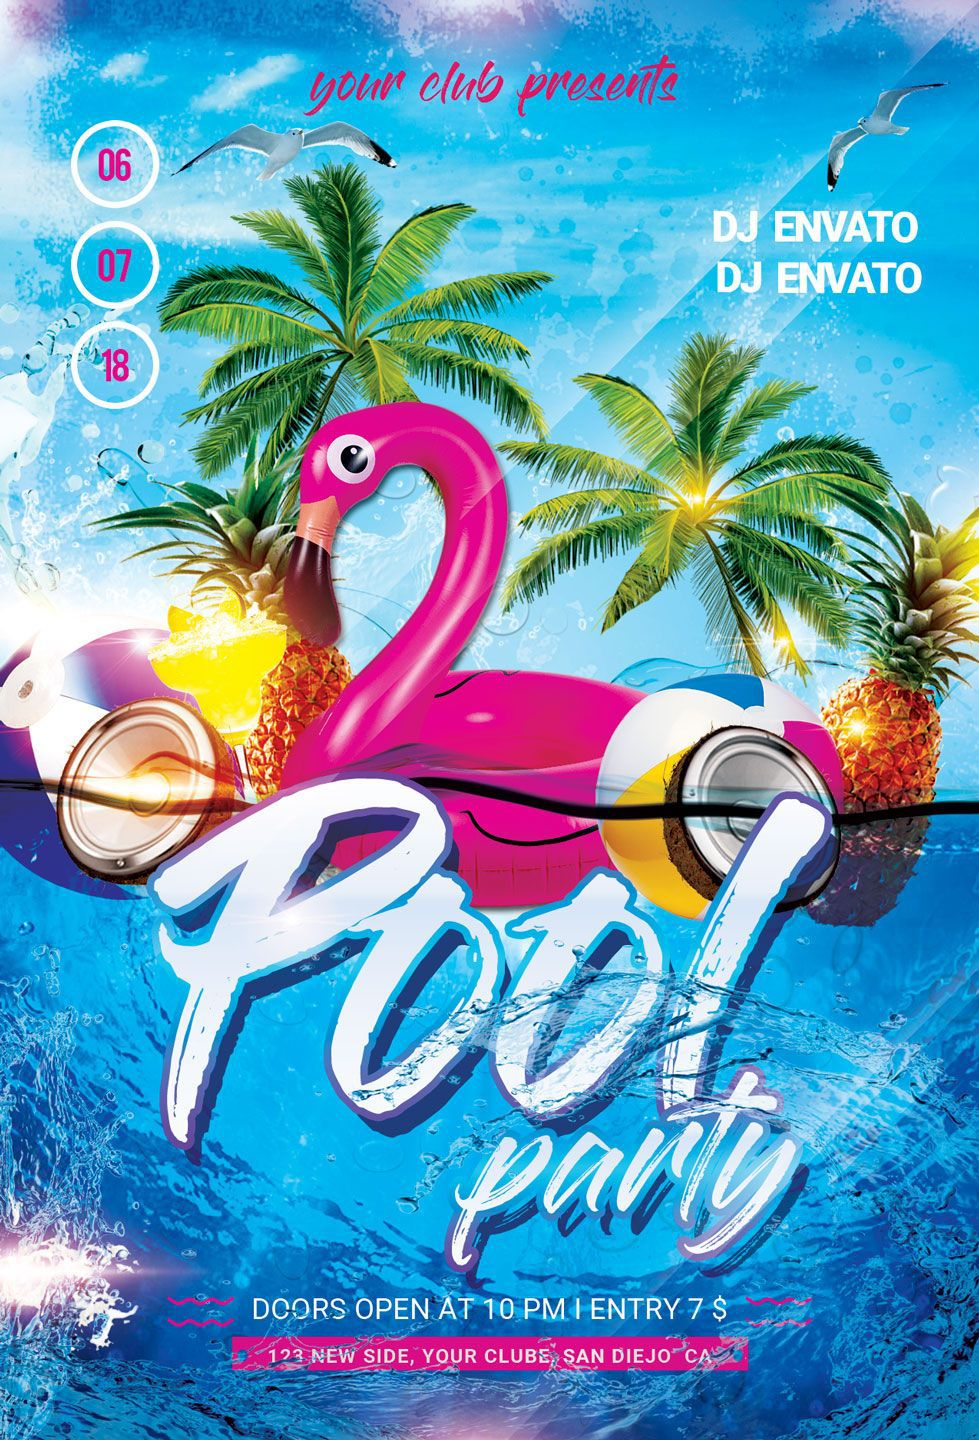 001 Marvelou Pool Party Flyer Template Free Image  Photoshop PsdFull